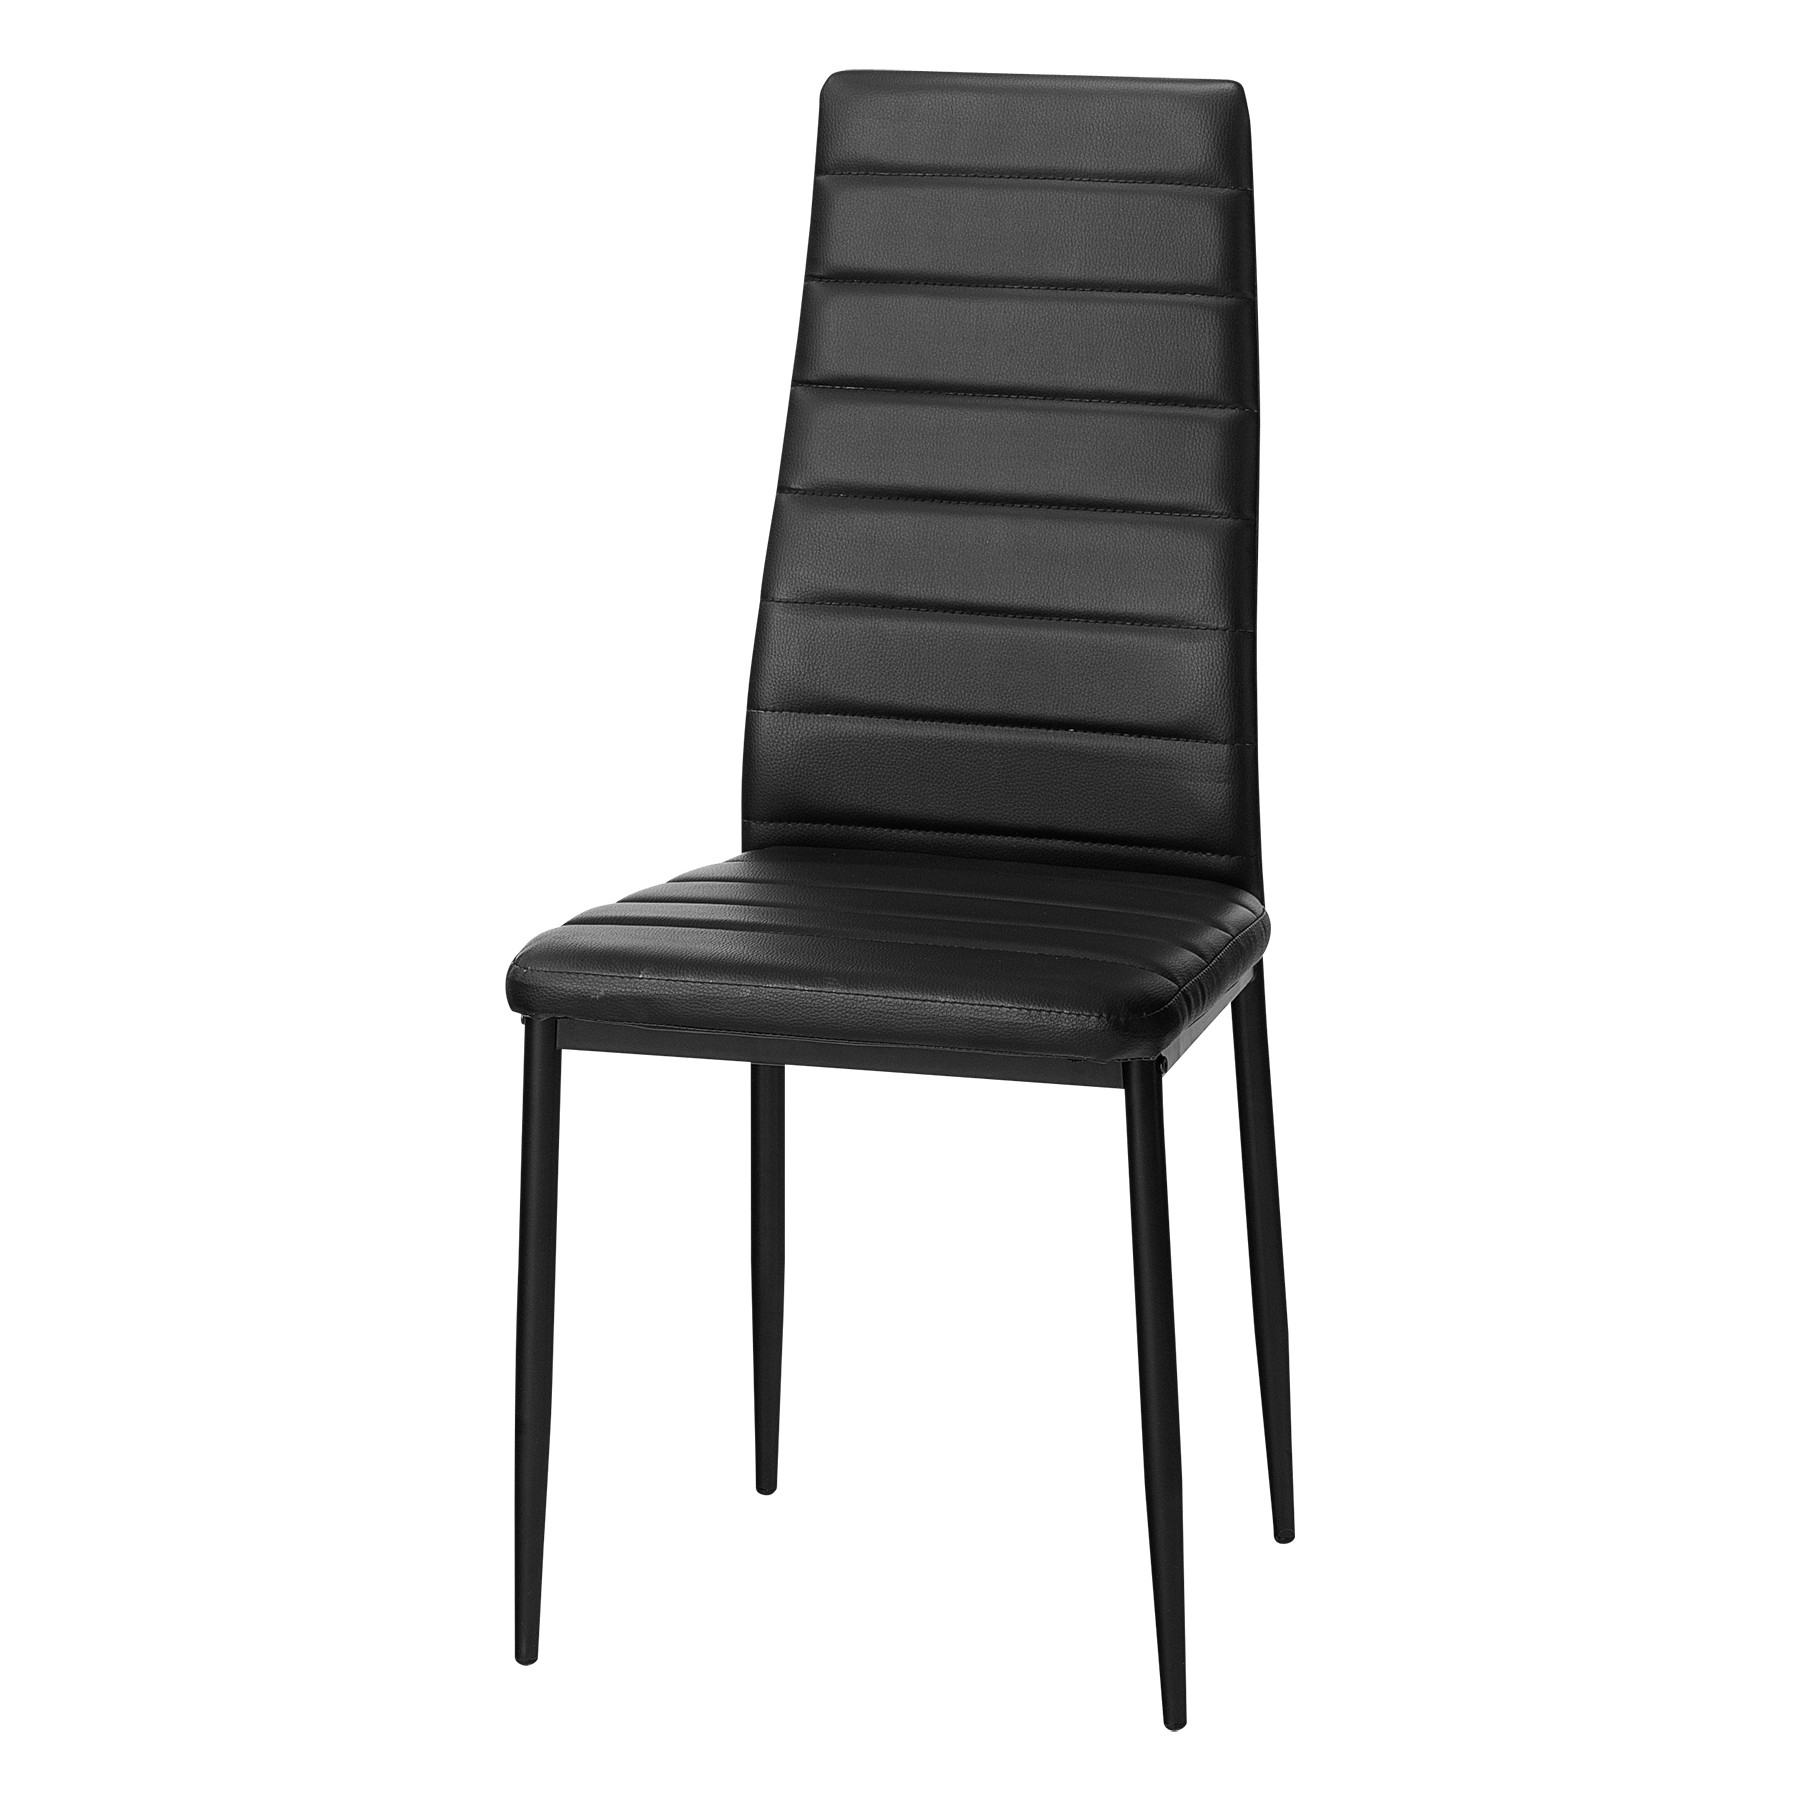 2017 Black Dining Chairs Throughout Inari Dining Chair (Black) (View 2 of 25)